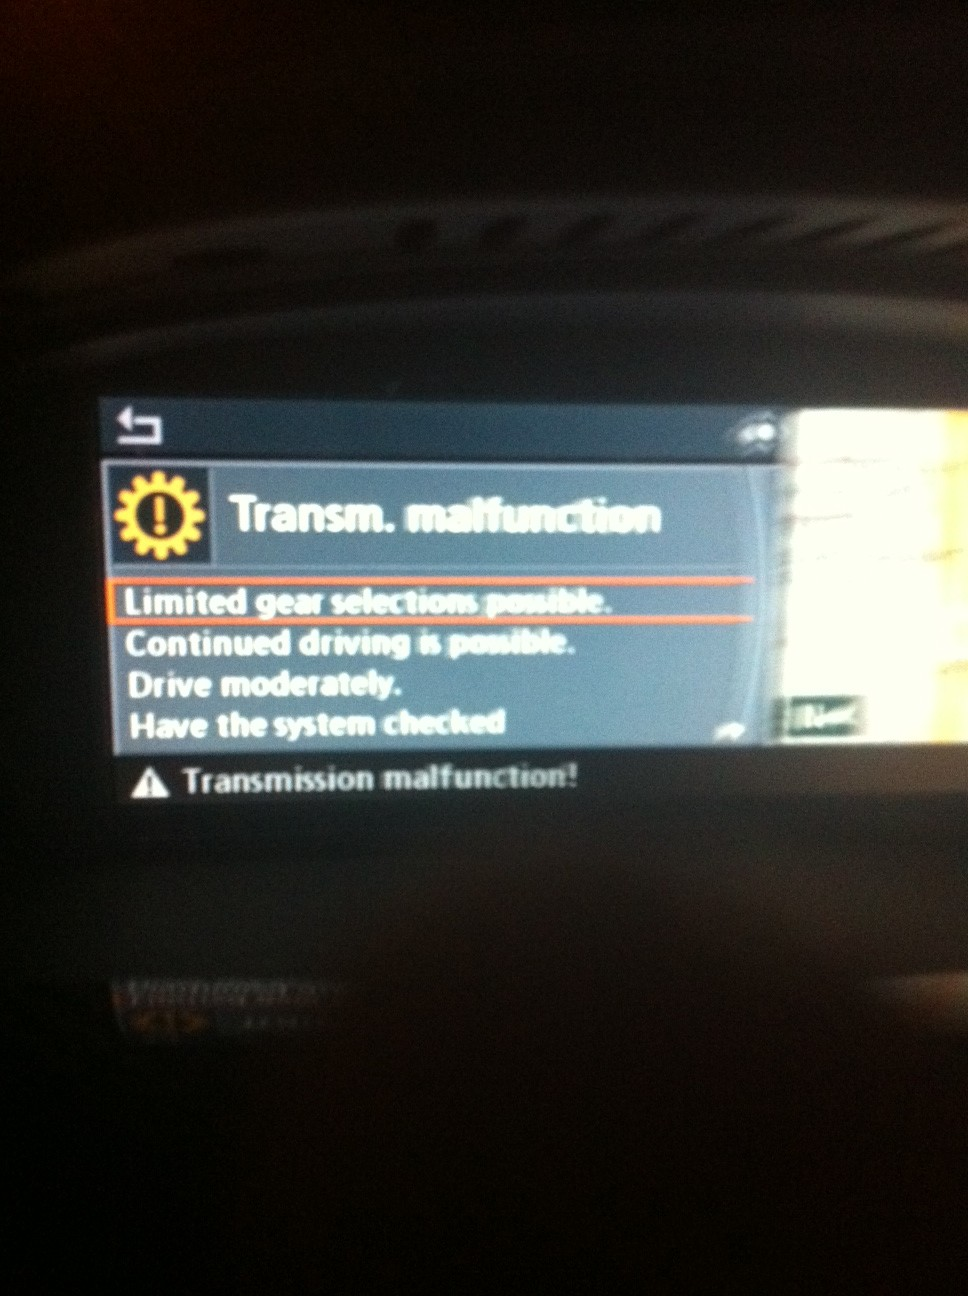 Transmission Malfunction AGAIN! 2nd time this year  - BMW M5 Forum